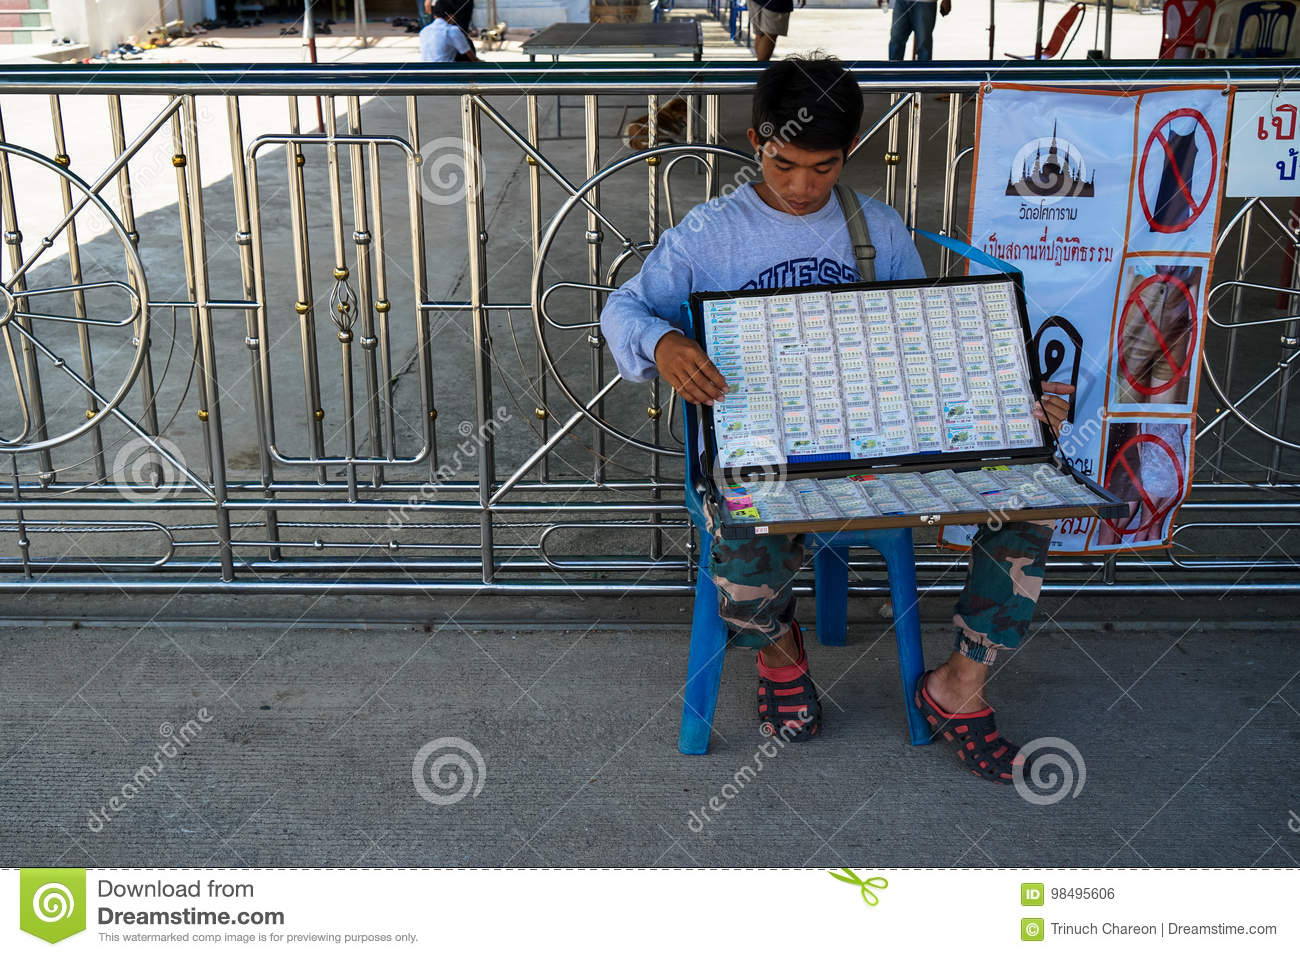 Samutprakarn, Thailand - August 14, 2017 :An unidentified vendor man sitting and holding box of lottery tickets for sale